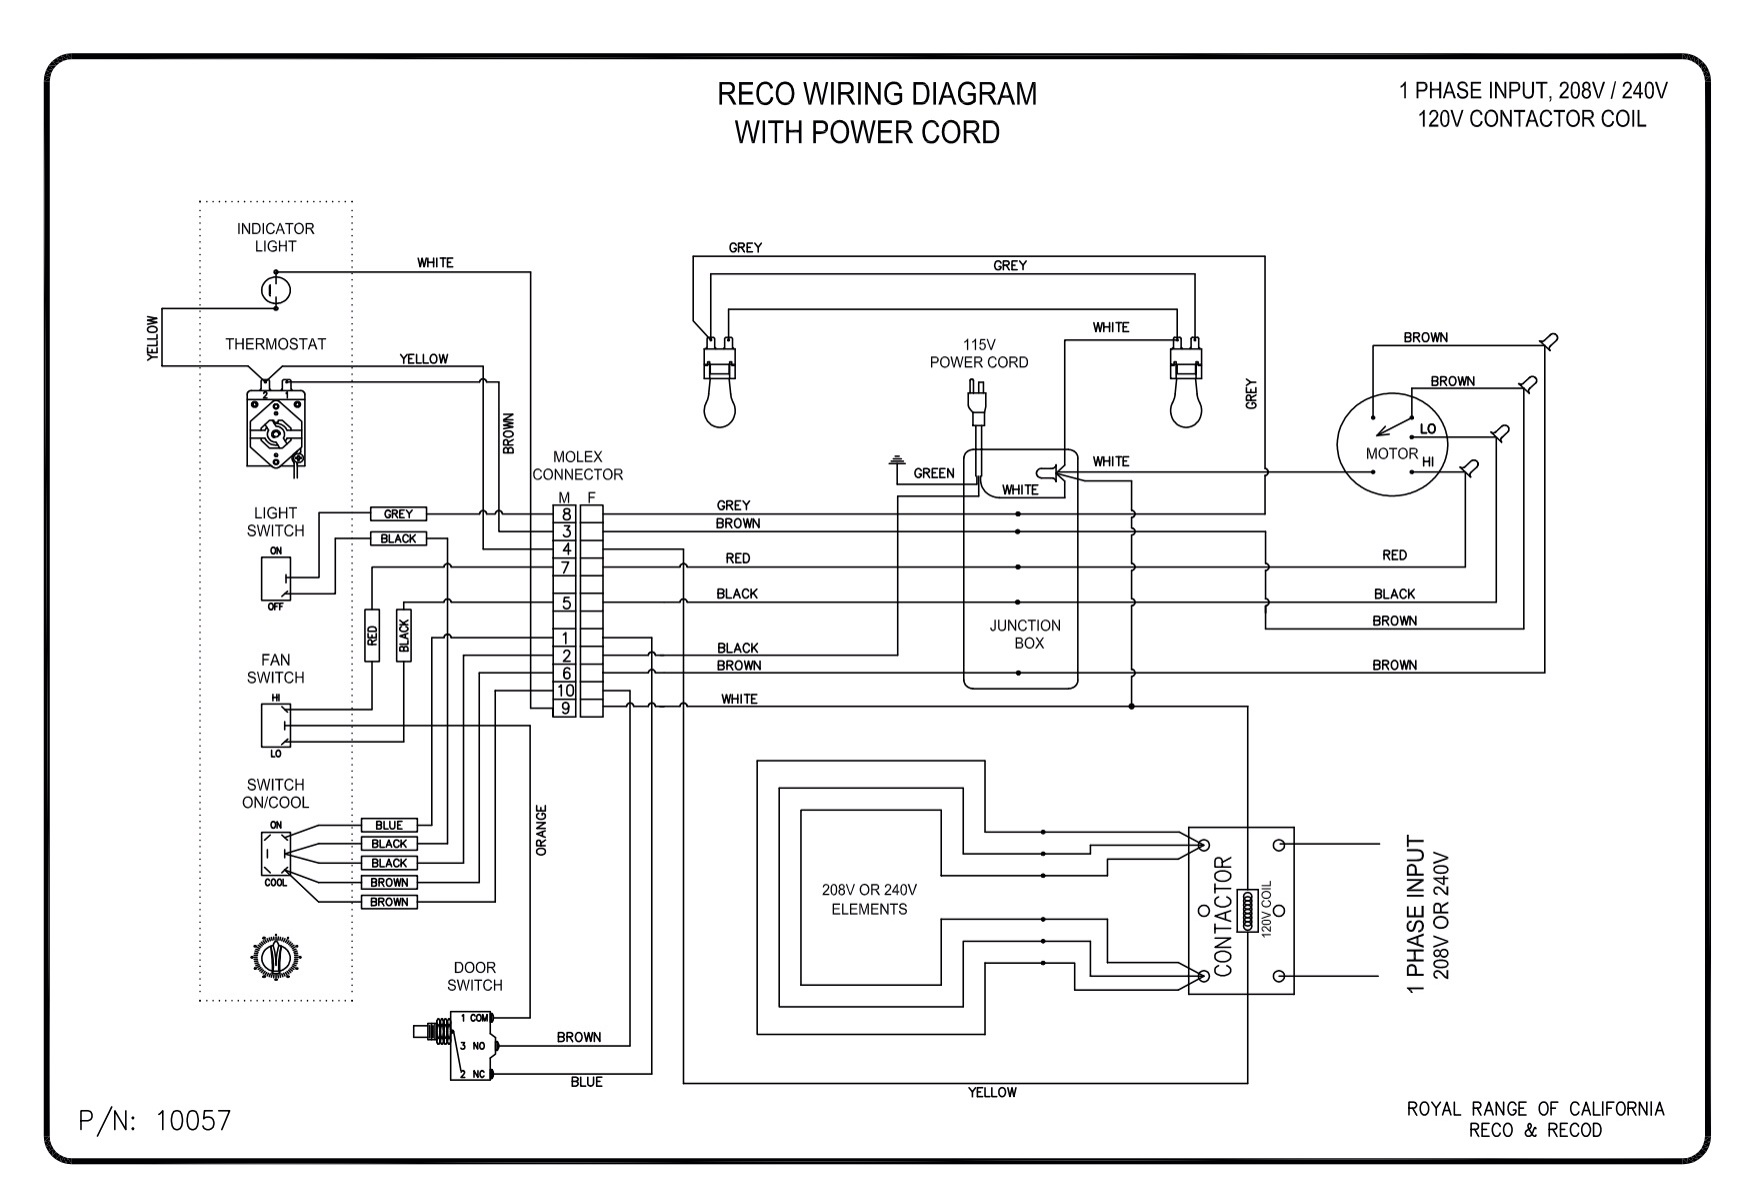 208 230 Volt Wiring Diagram Circuit Symbols Tork 7102 Volts Library Of Diagrams Images Gallery